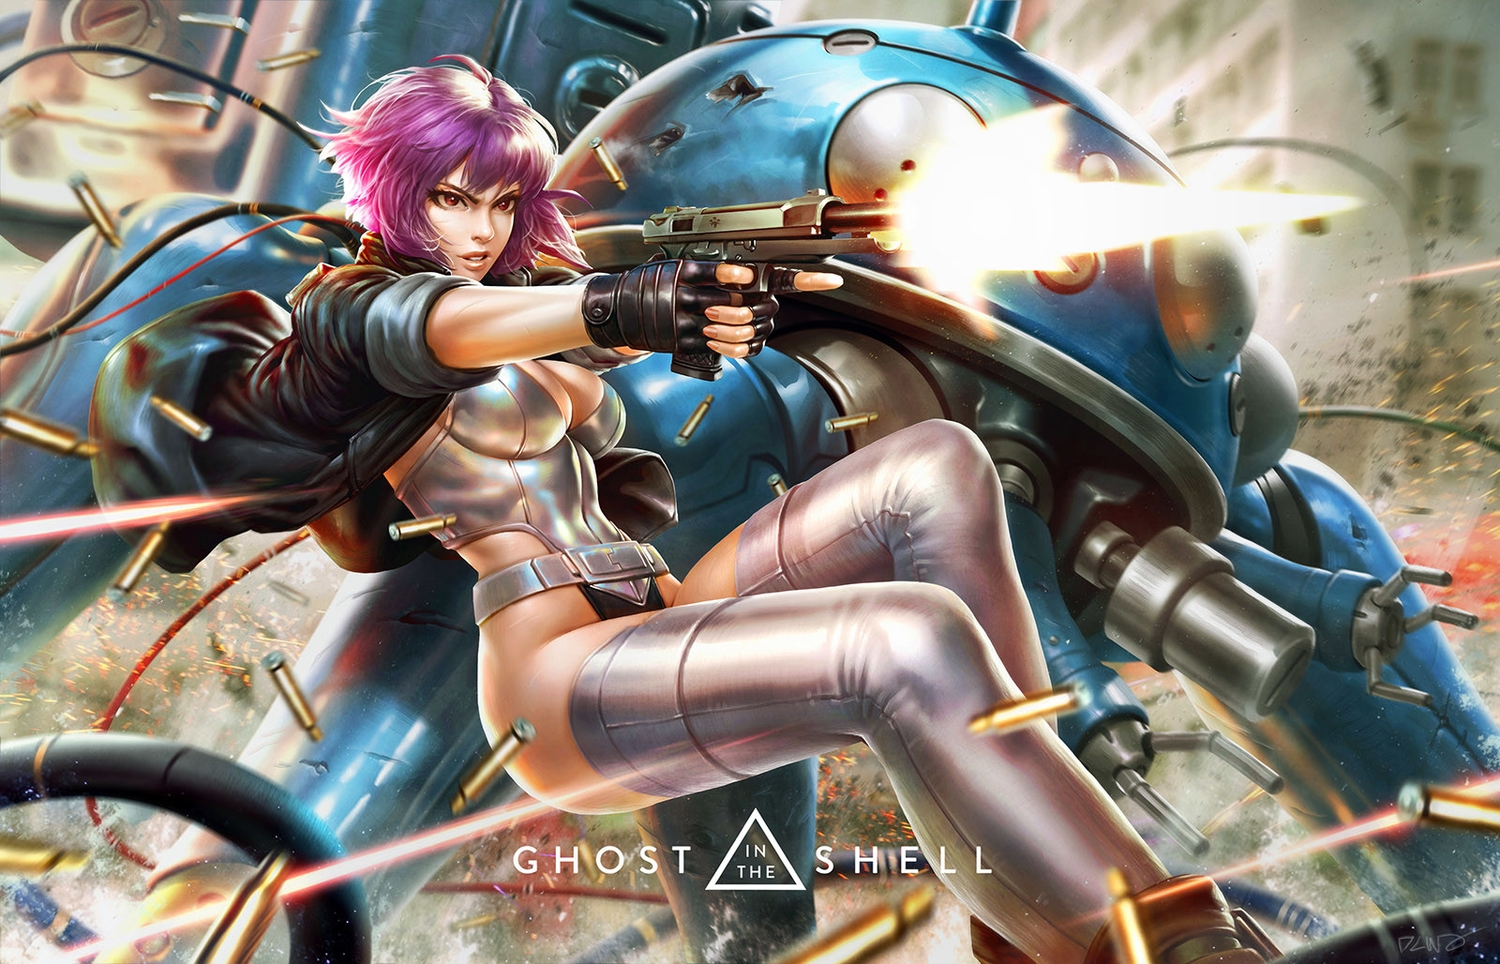 bodysuit breasts derrick_chew ghost_in_the_shell ghost_in_the_shell:_stand_alone_complex gloves gun jpeg_artifacts kusanagi_motoko logo purple_hair realistic red_eyes robot short_hair signed tachikoma thighhighs weapon